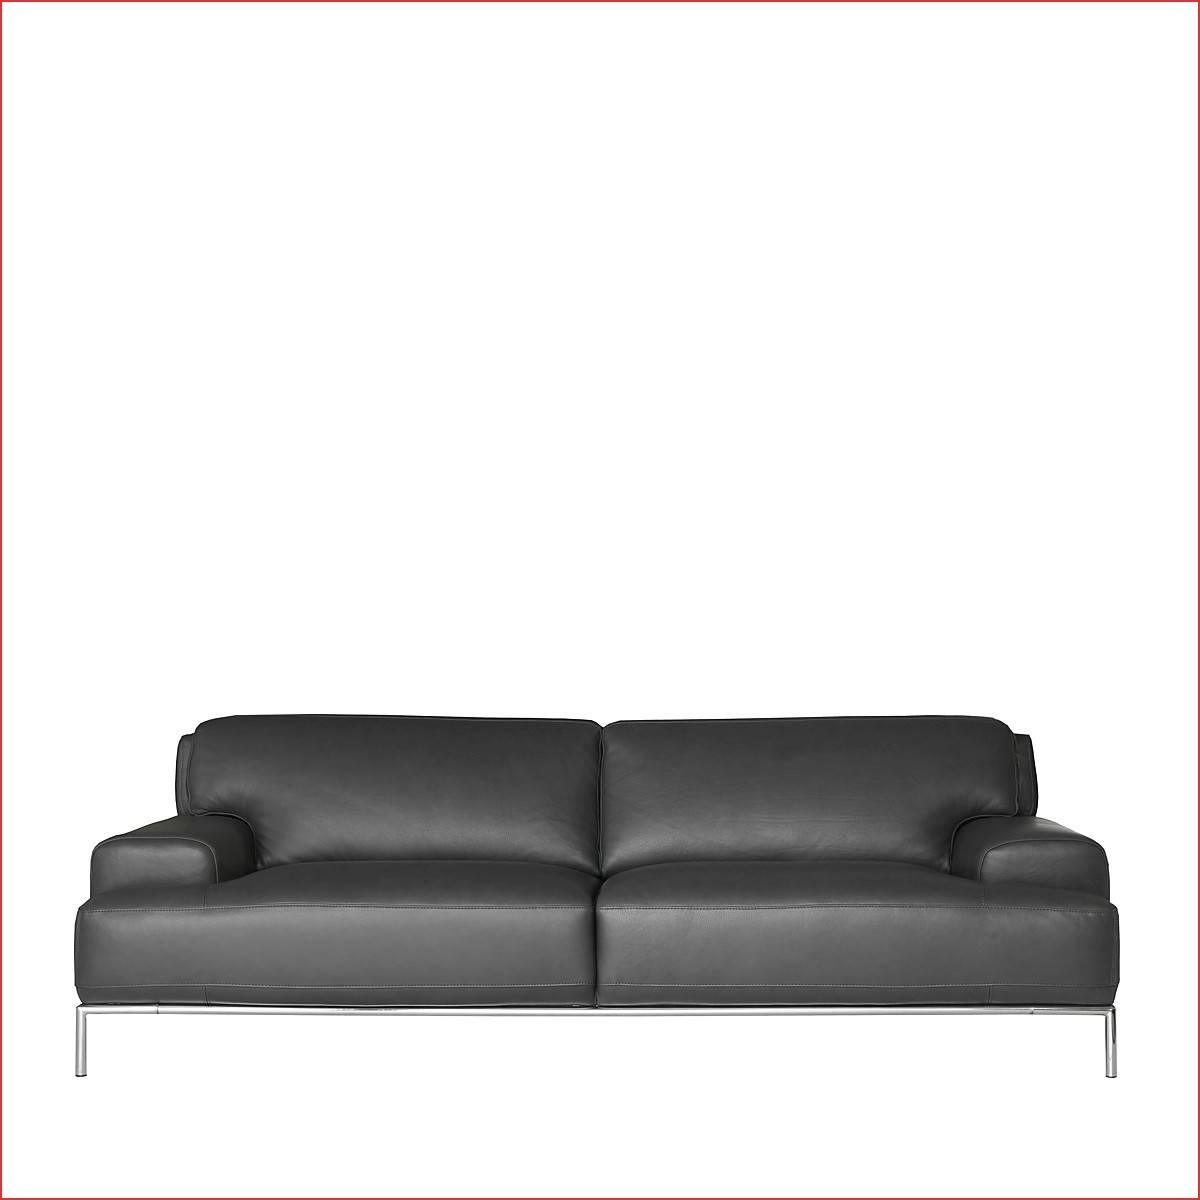 Chateau D Ax Italian Leather Sofa | Sofa Ideas throughout Divani Chateau D'ax Leather Sofas (Image 3 of 15)